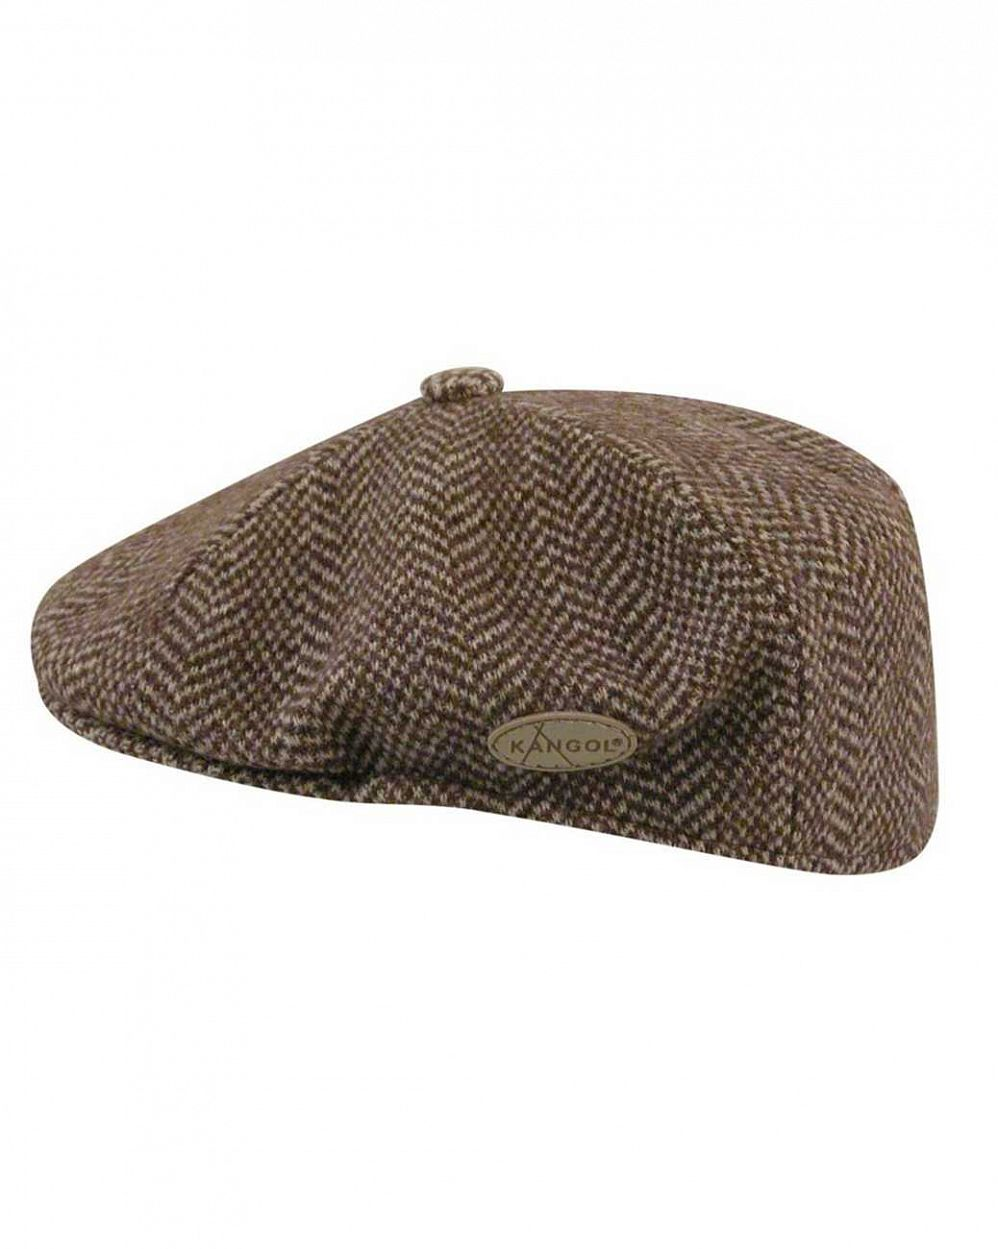 Кепка Kangol 0264KG Herringbone 504 Brown отзывы